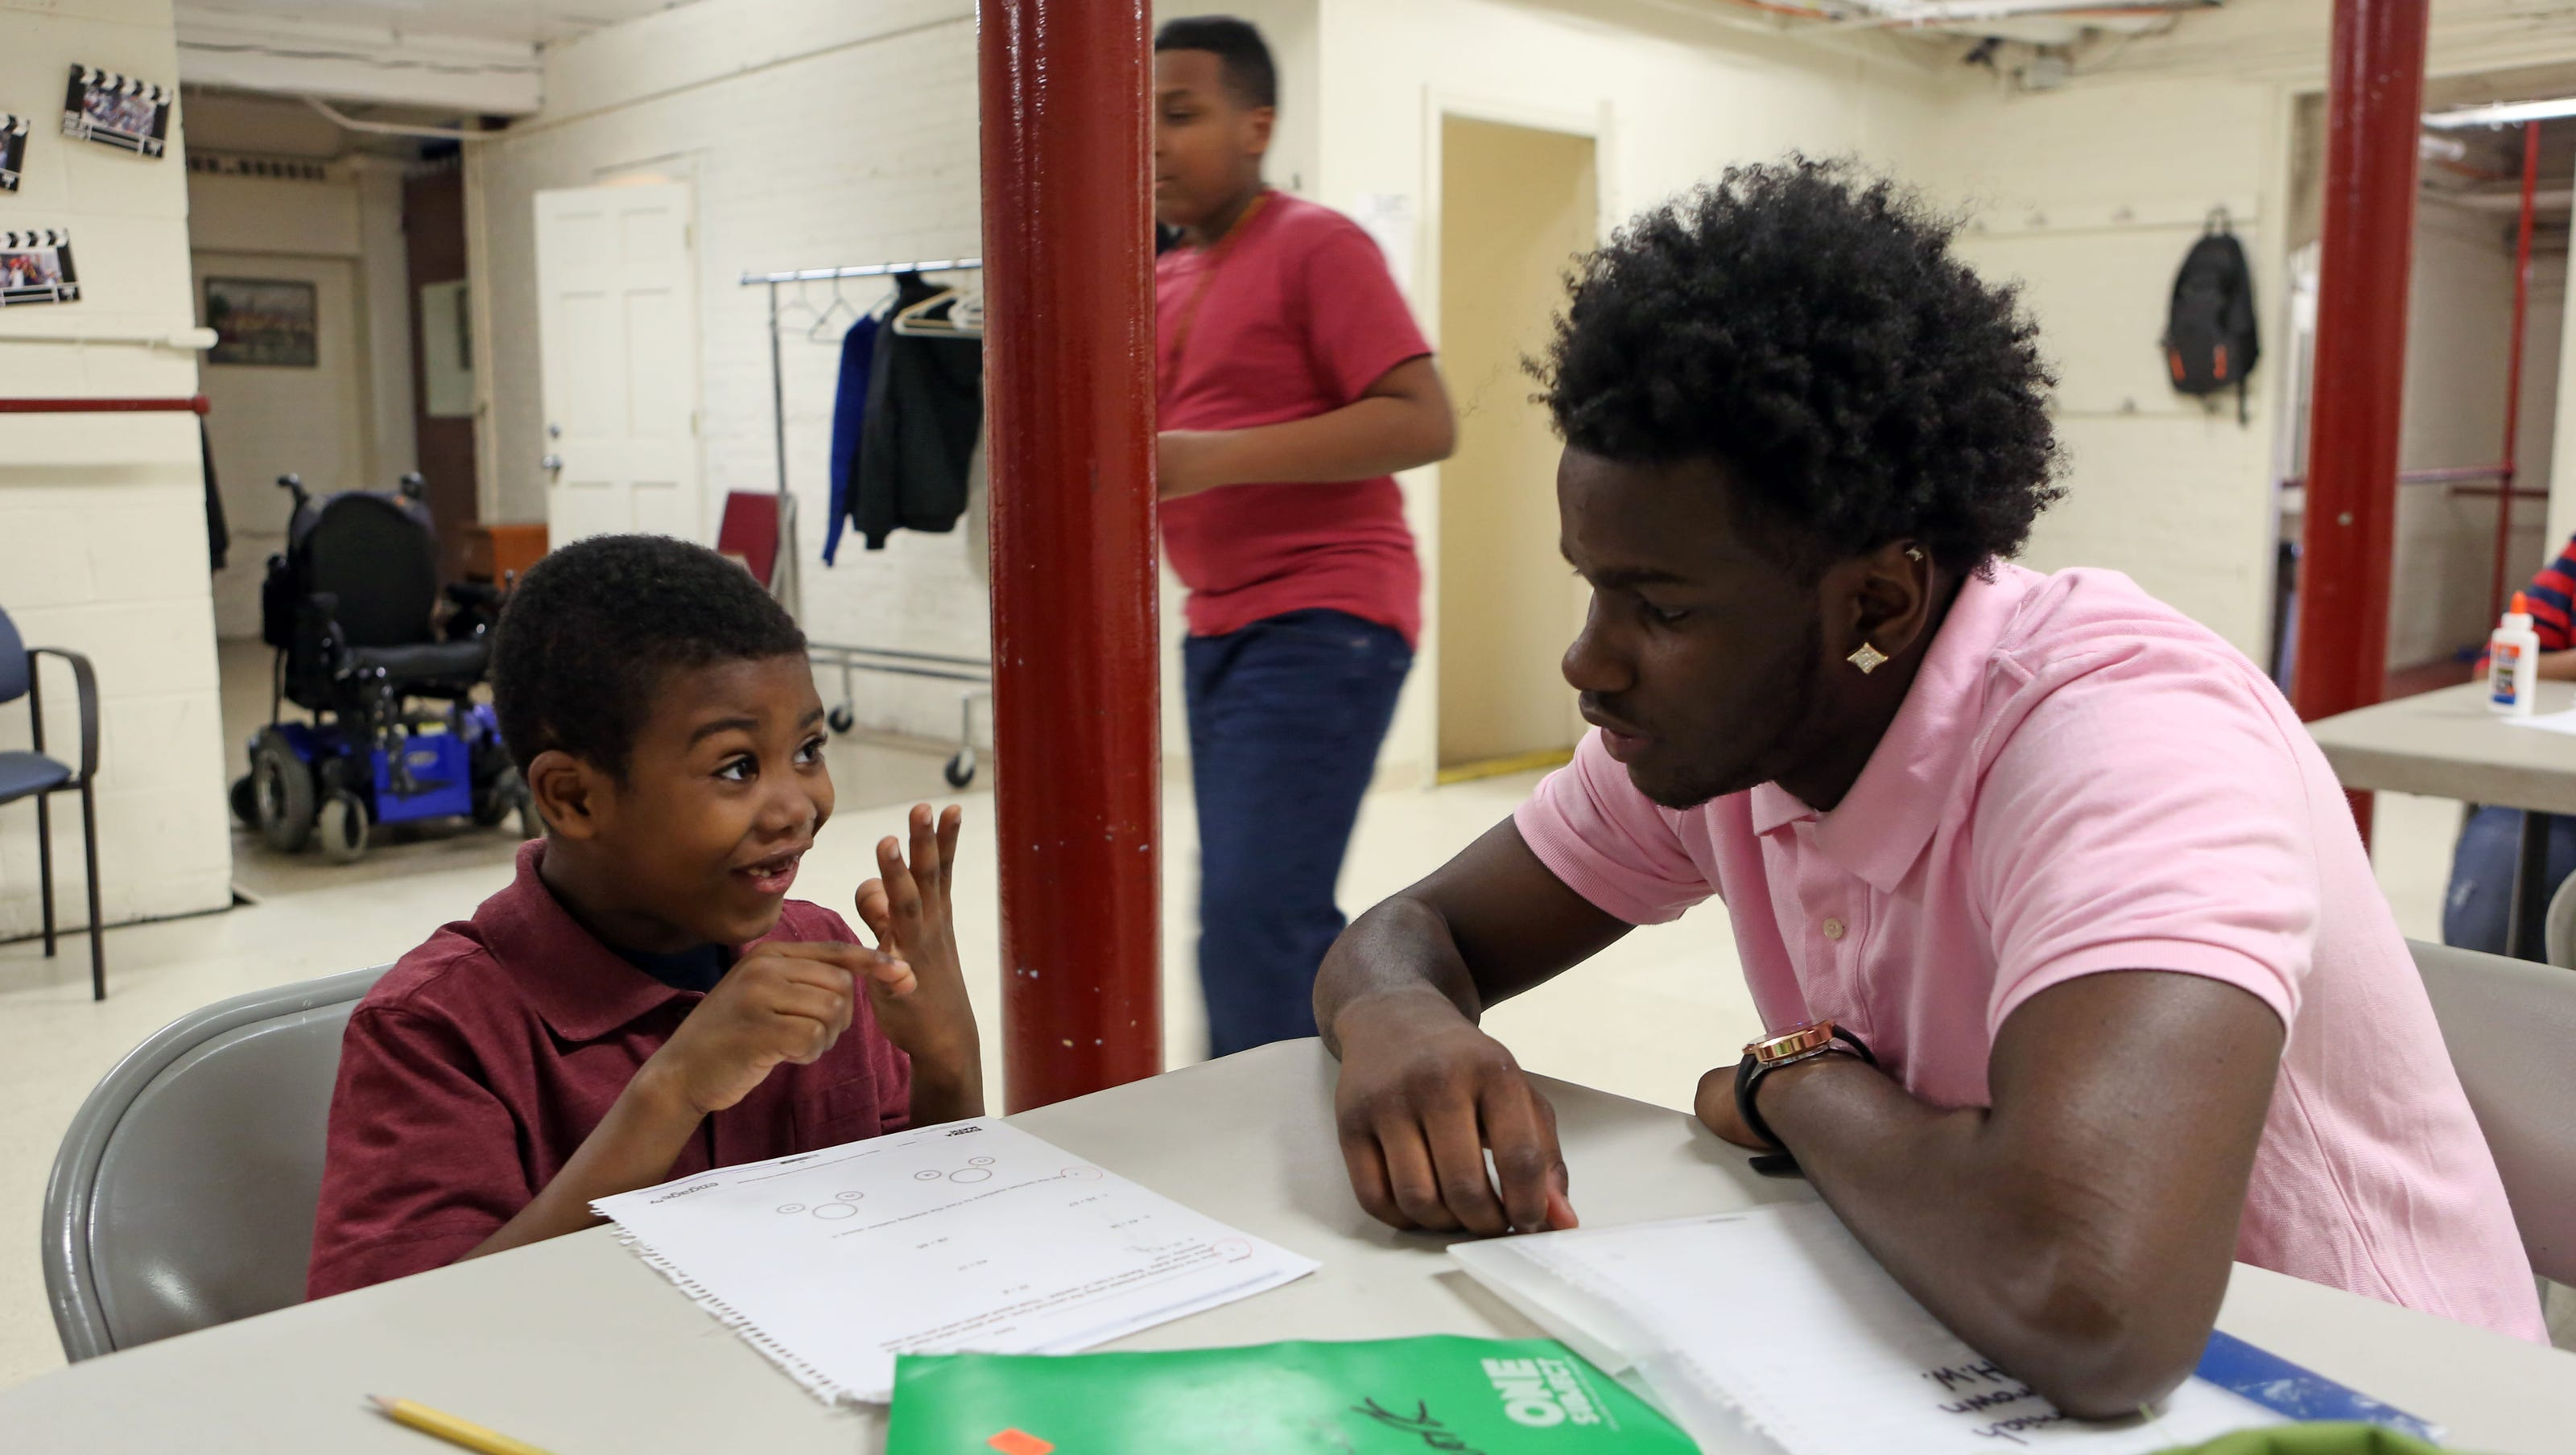 Mount Vernon NY Best kept secret is disabled youth program at armory